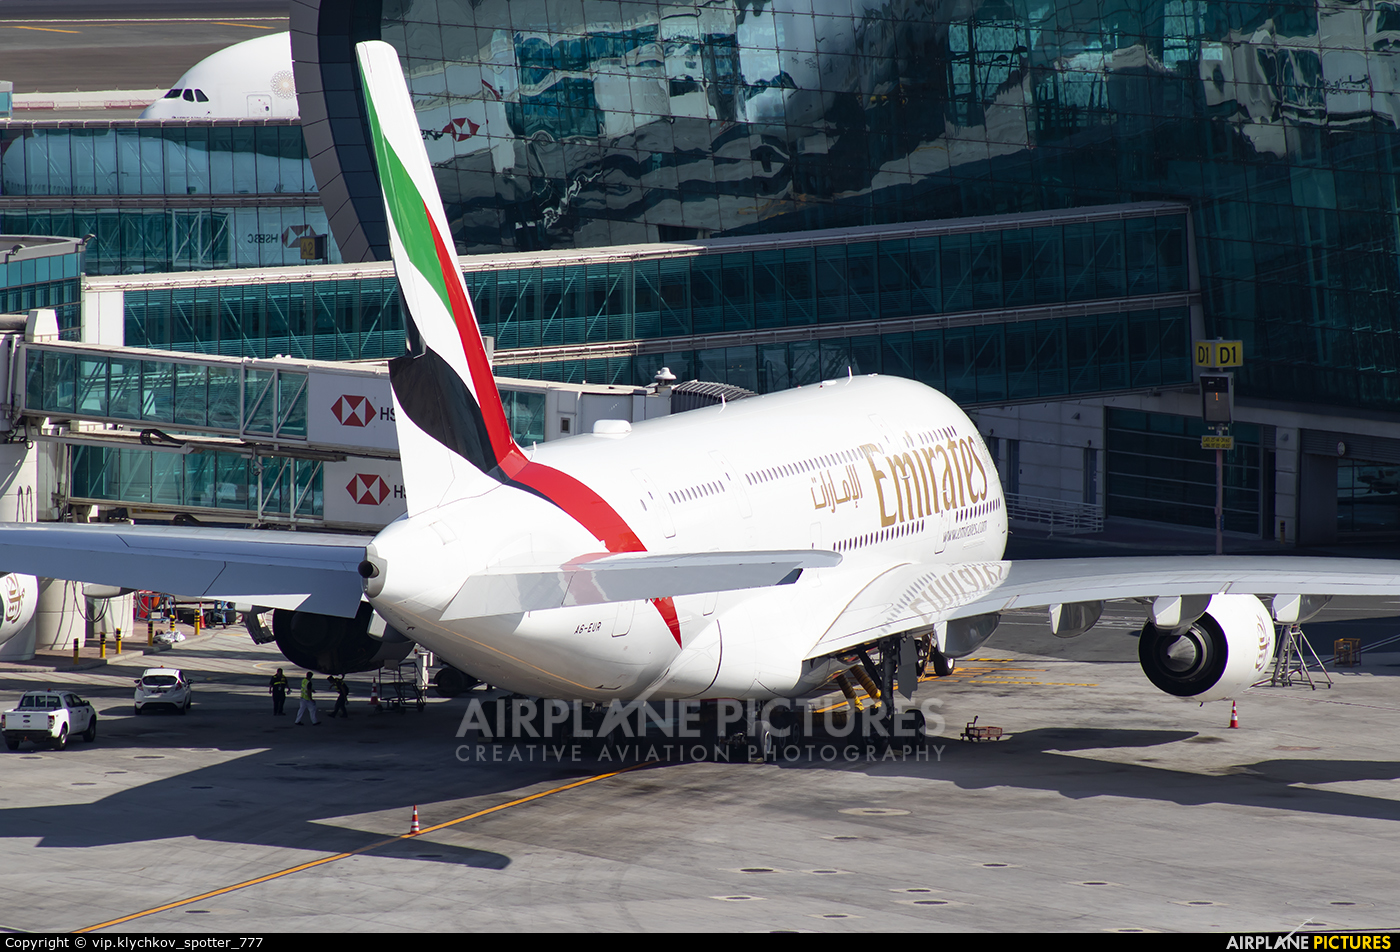 Emirates Airlines A6-EUR aircraft at Dubai Intl